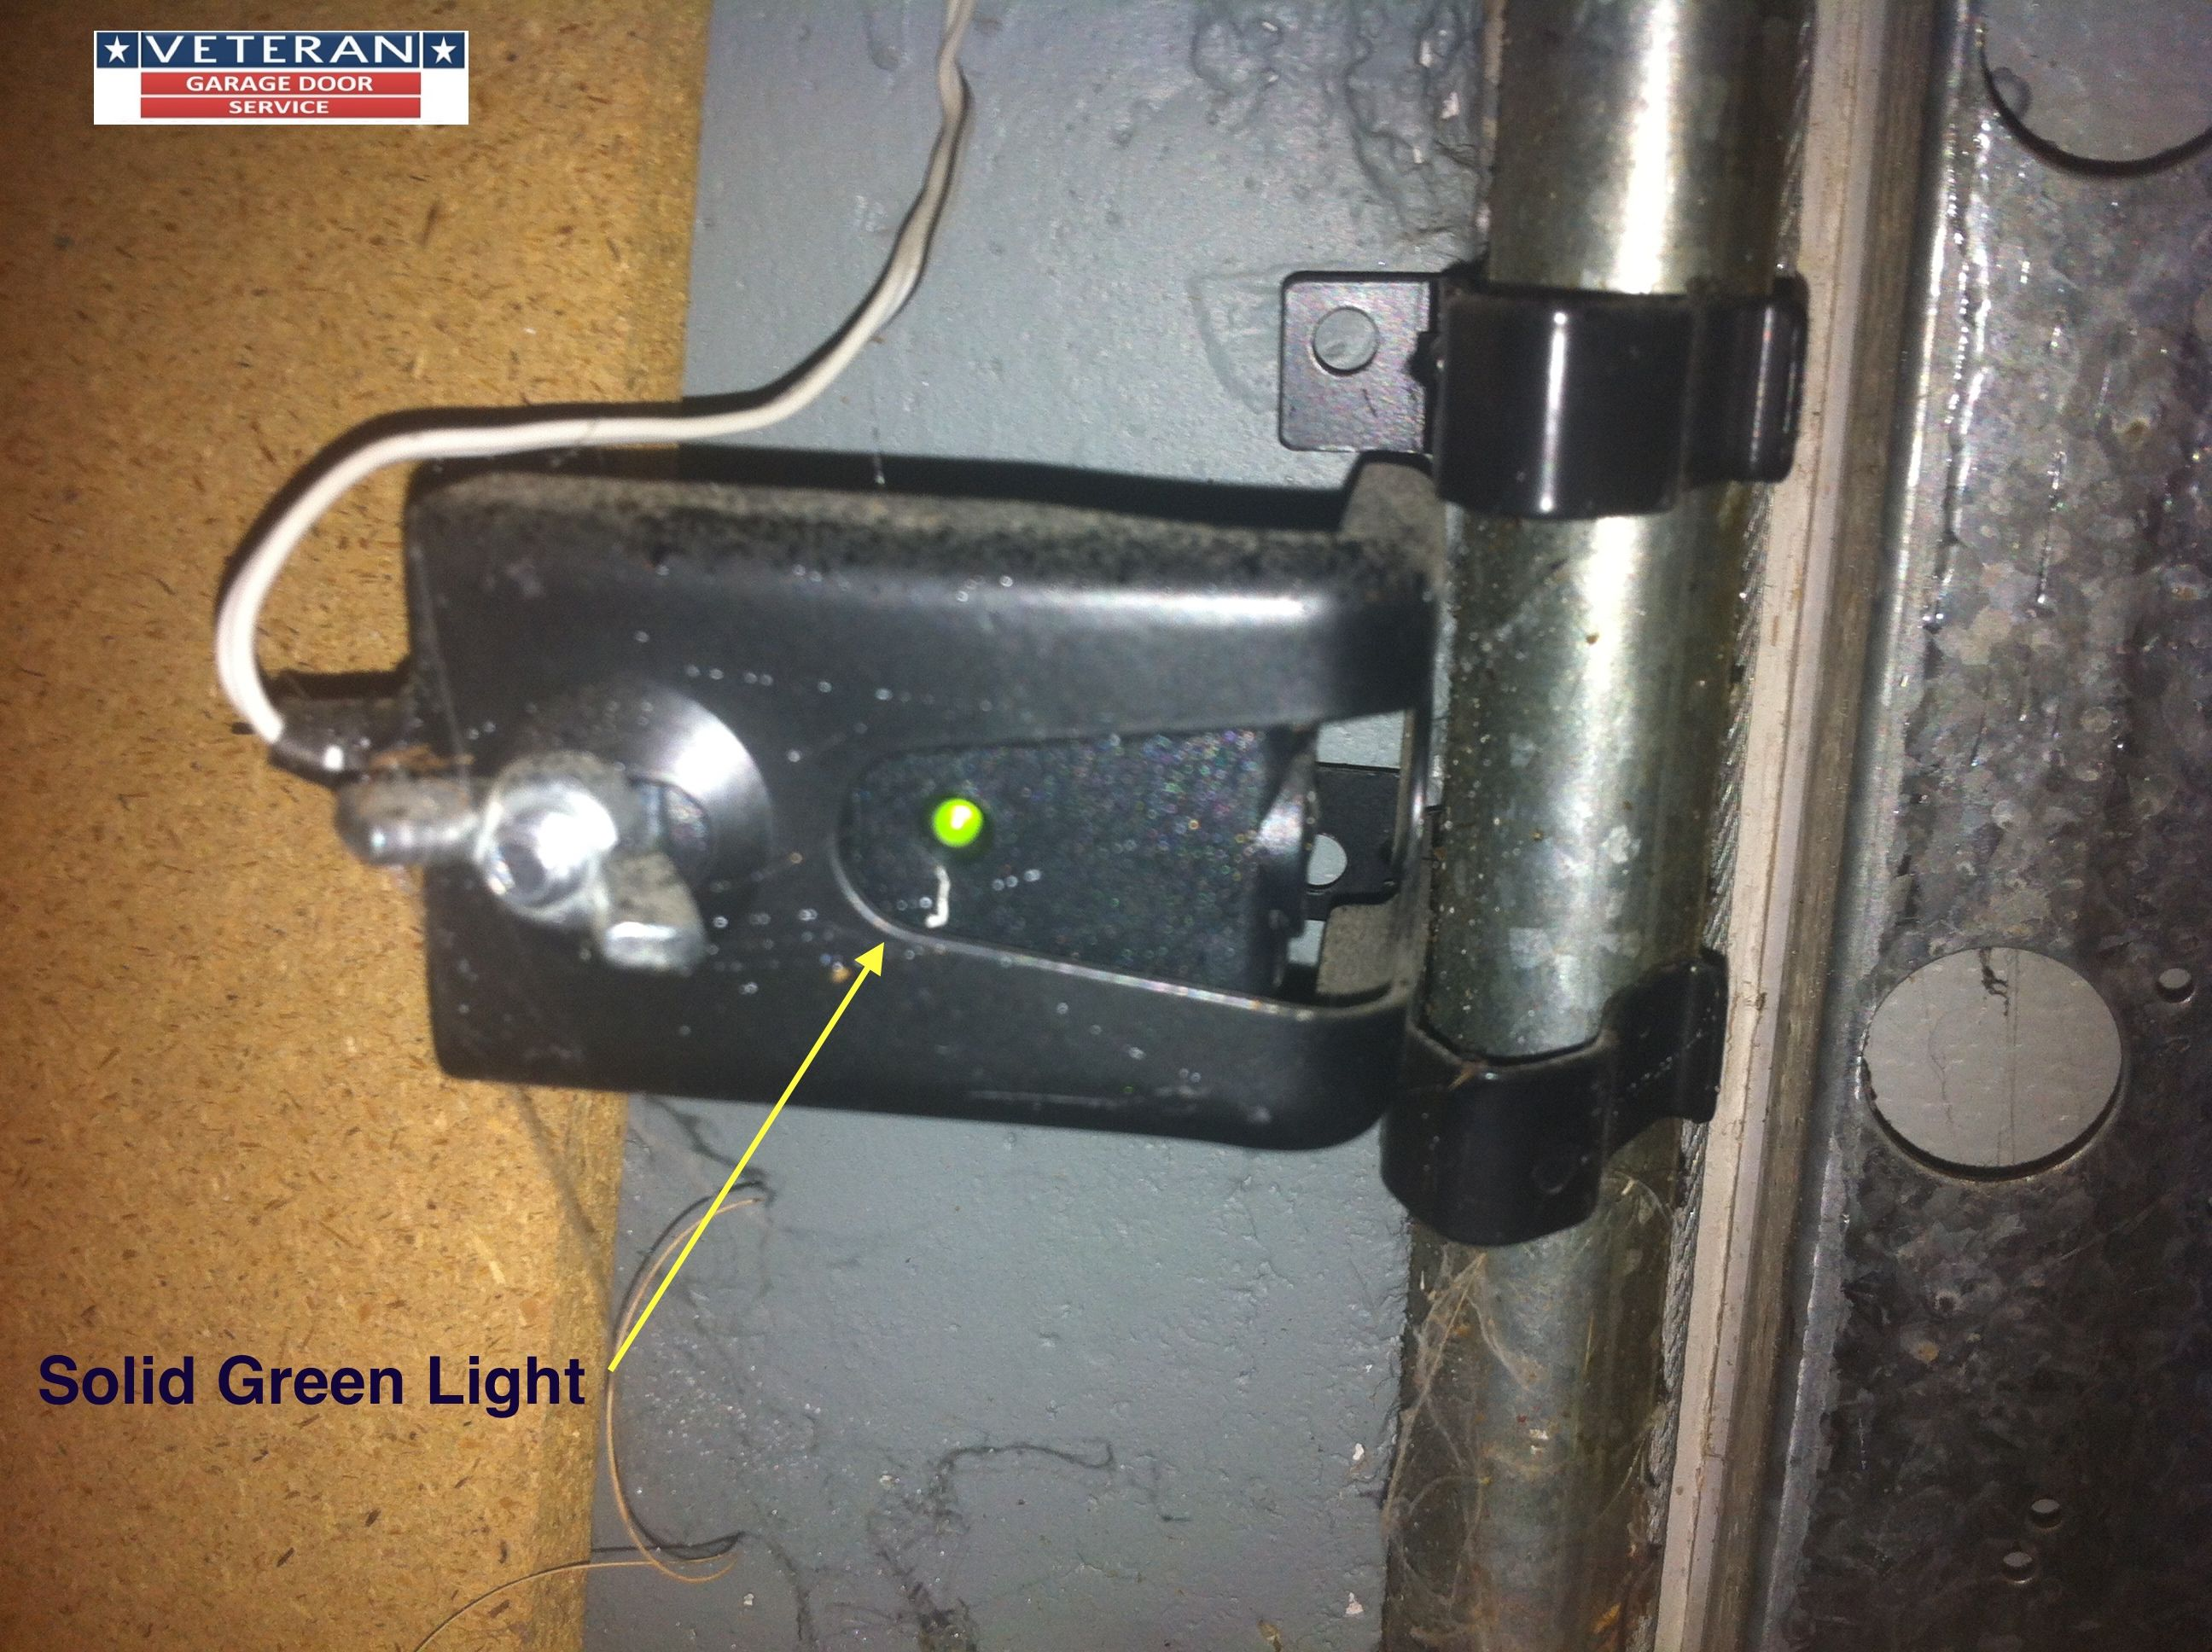 install wave and door smart review open opener sensor gocontrollinear img z linear garage gocontrol